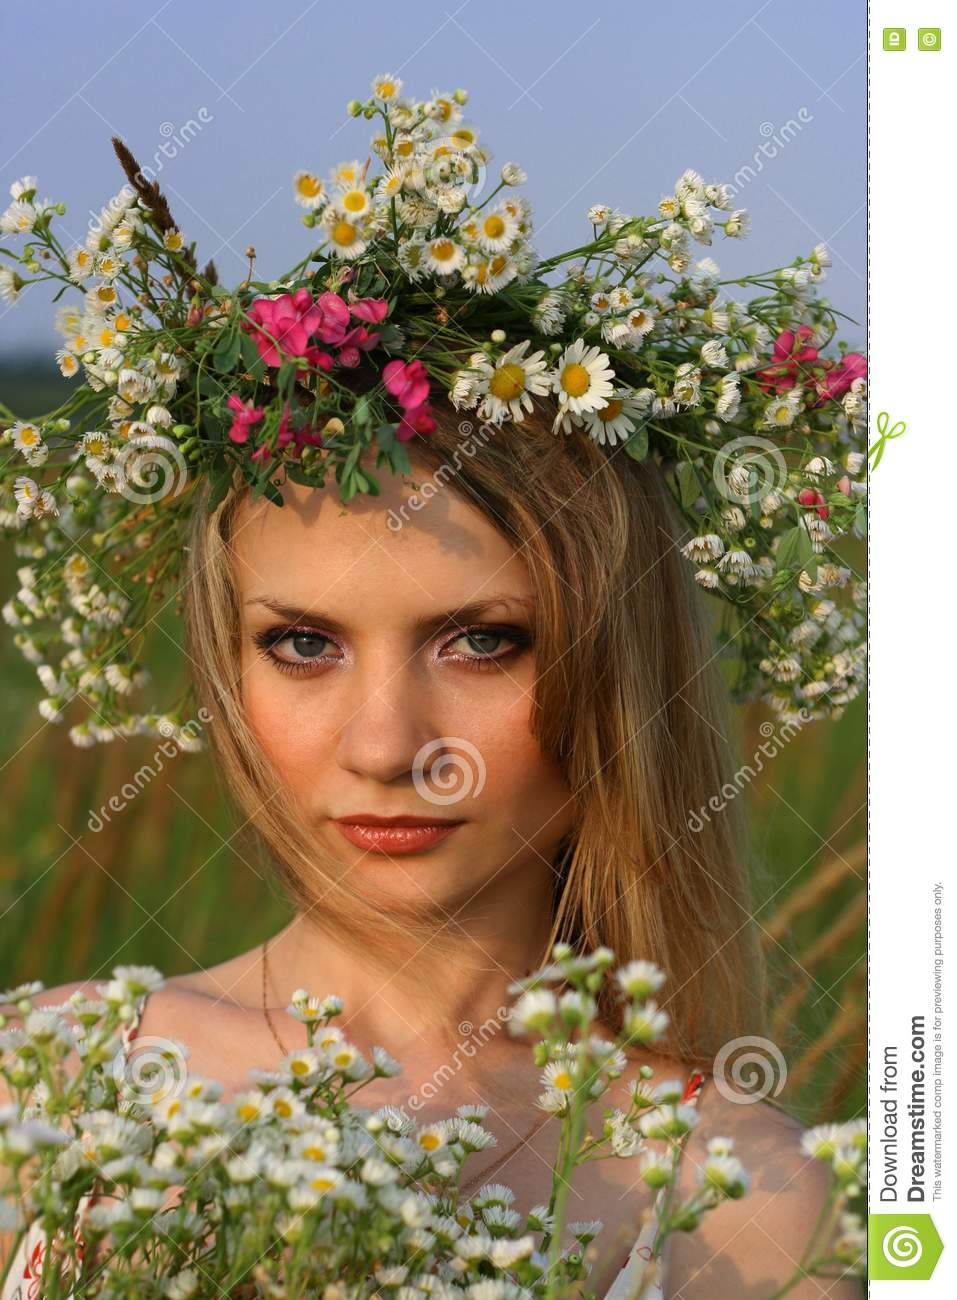 Girl with wild flowers